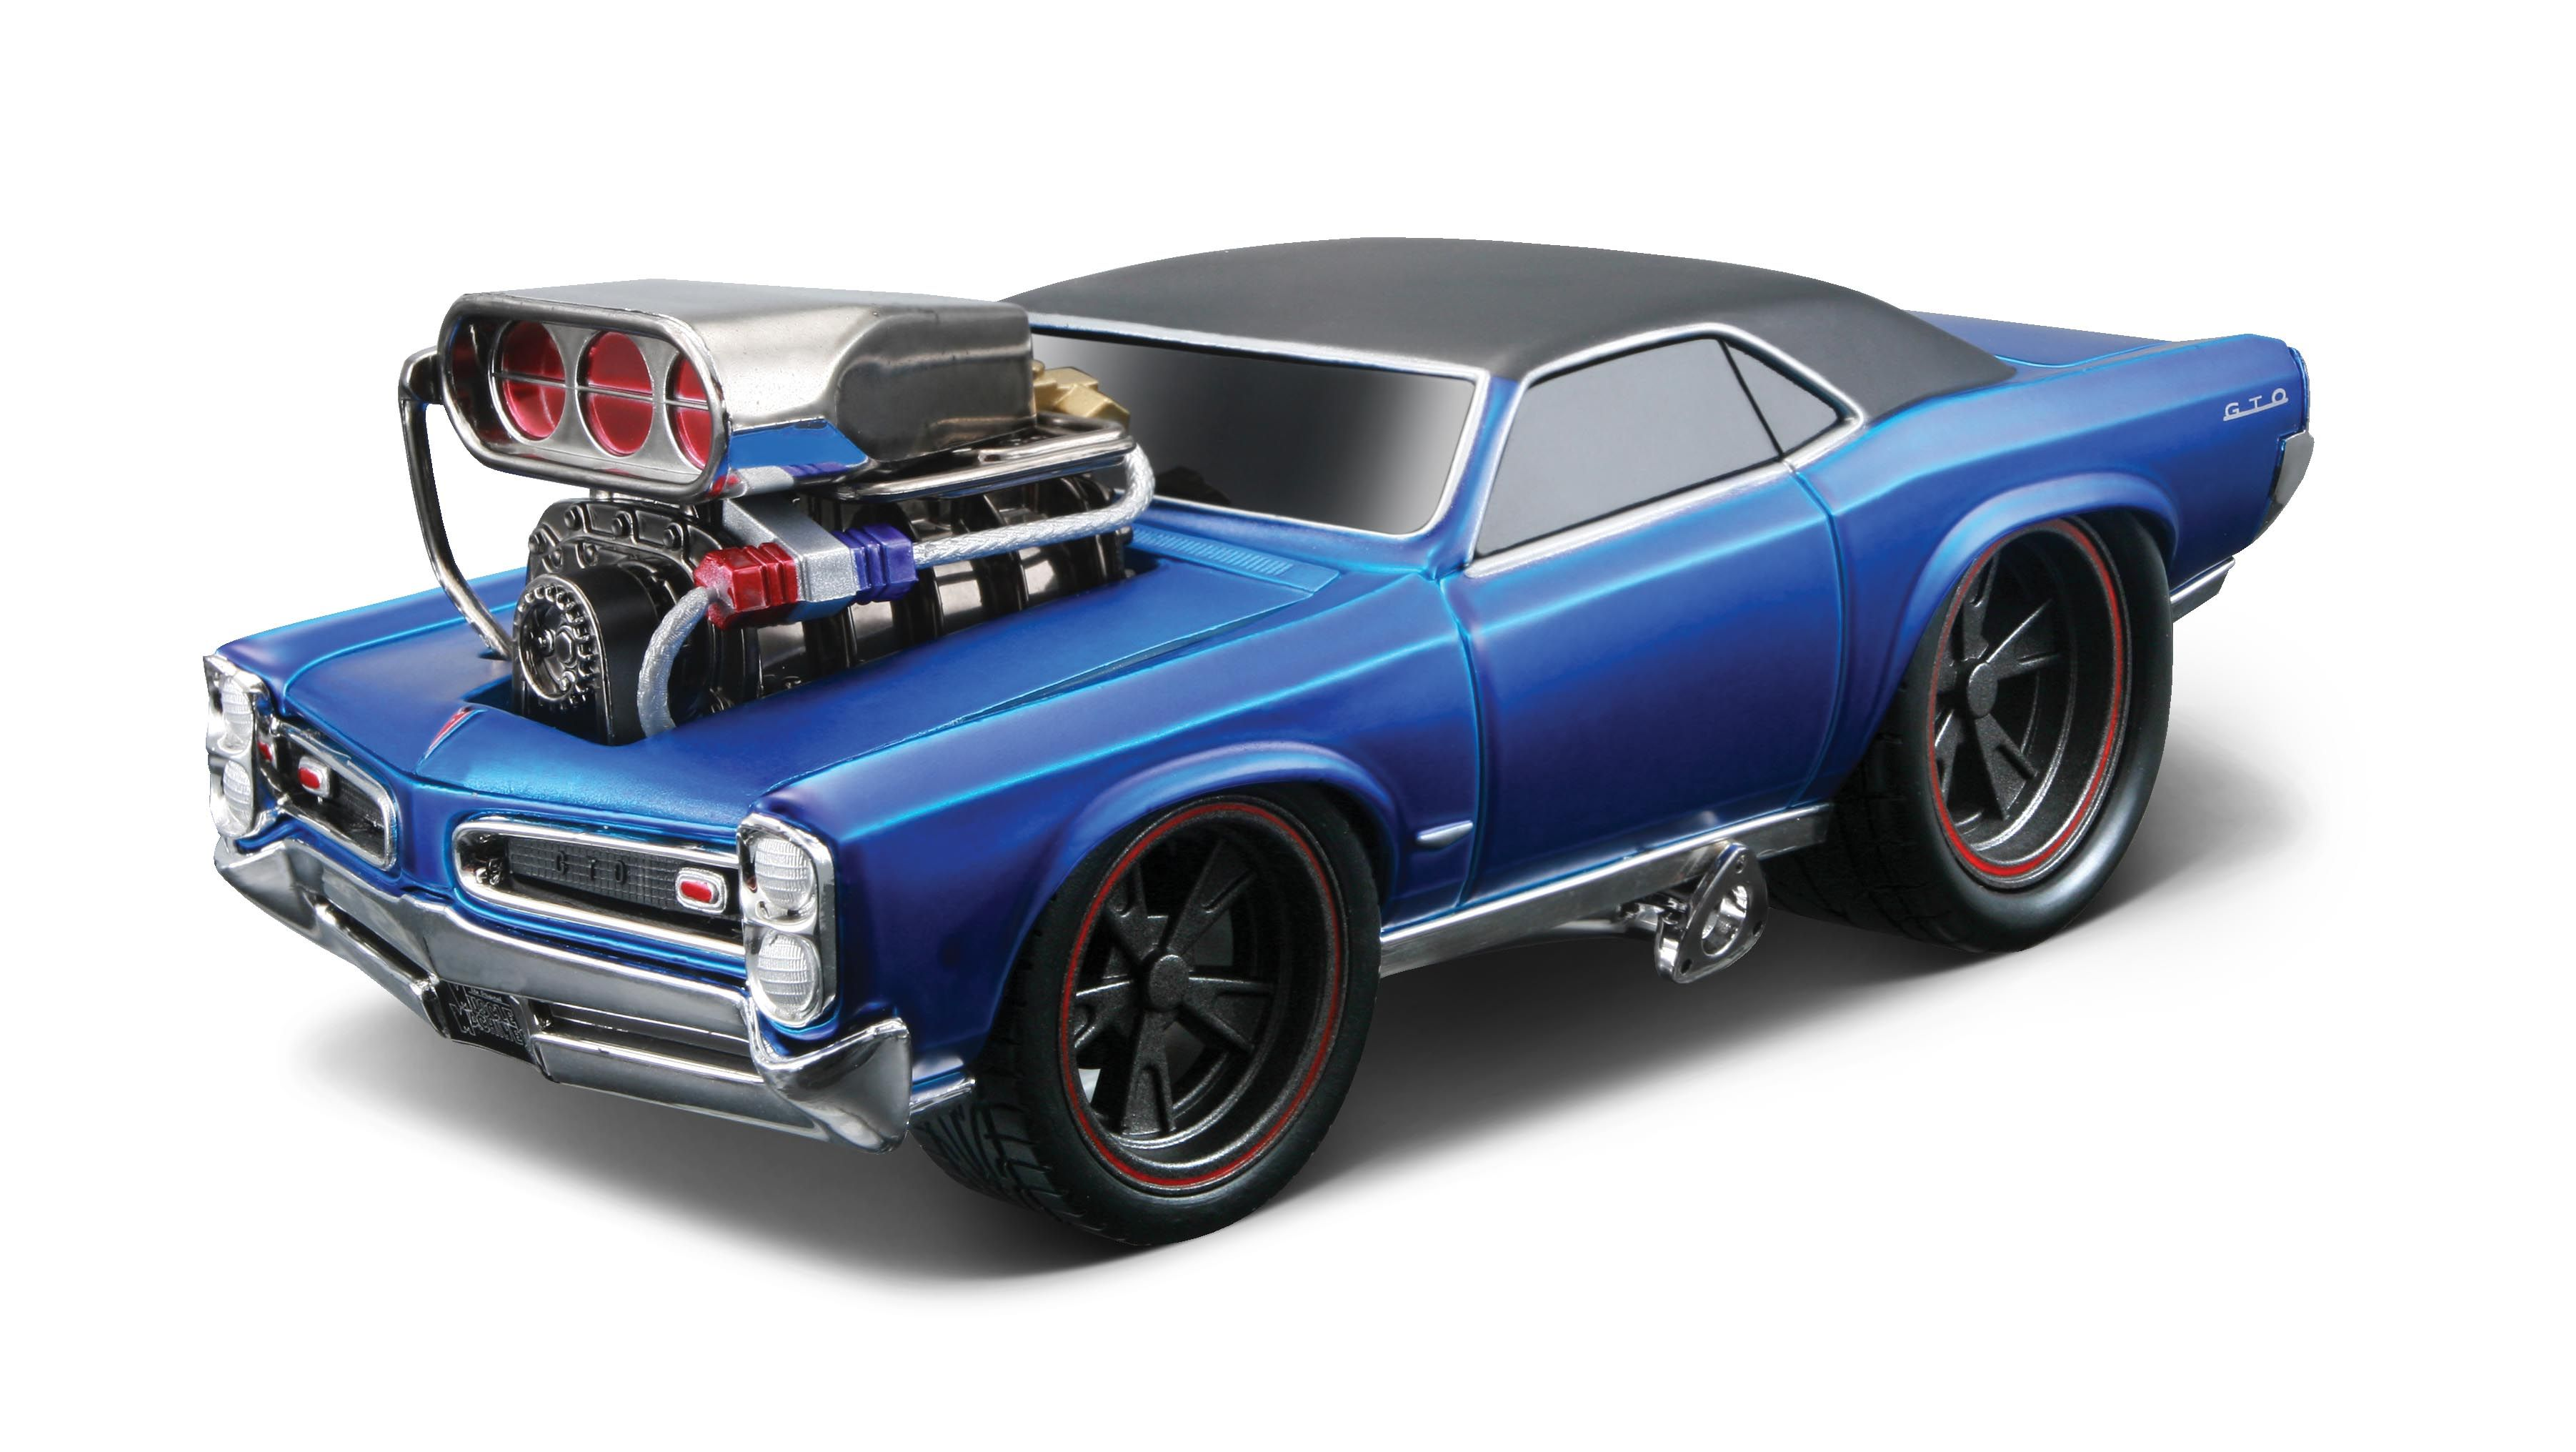 Researching transparent blue scale 1966 pontiac gto model cars find out all you need to know at hobbydb